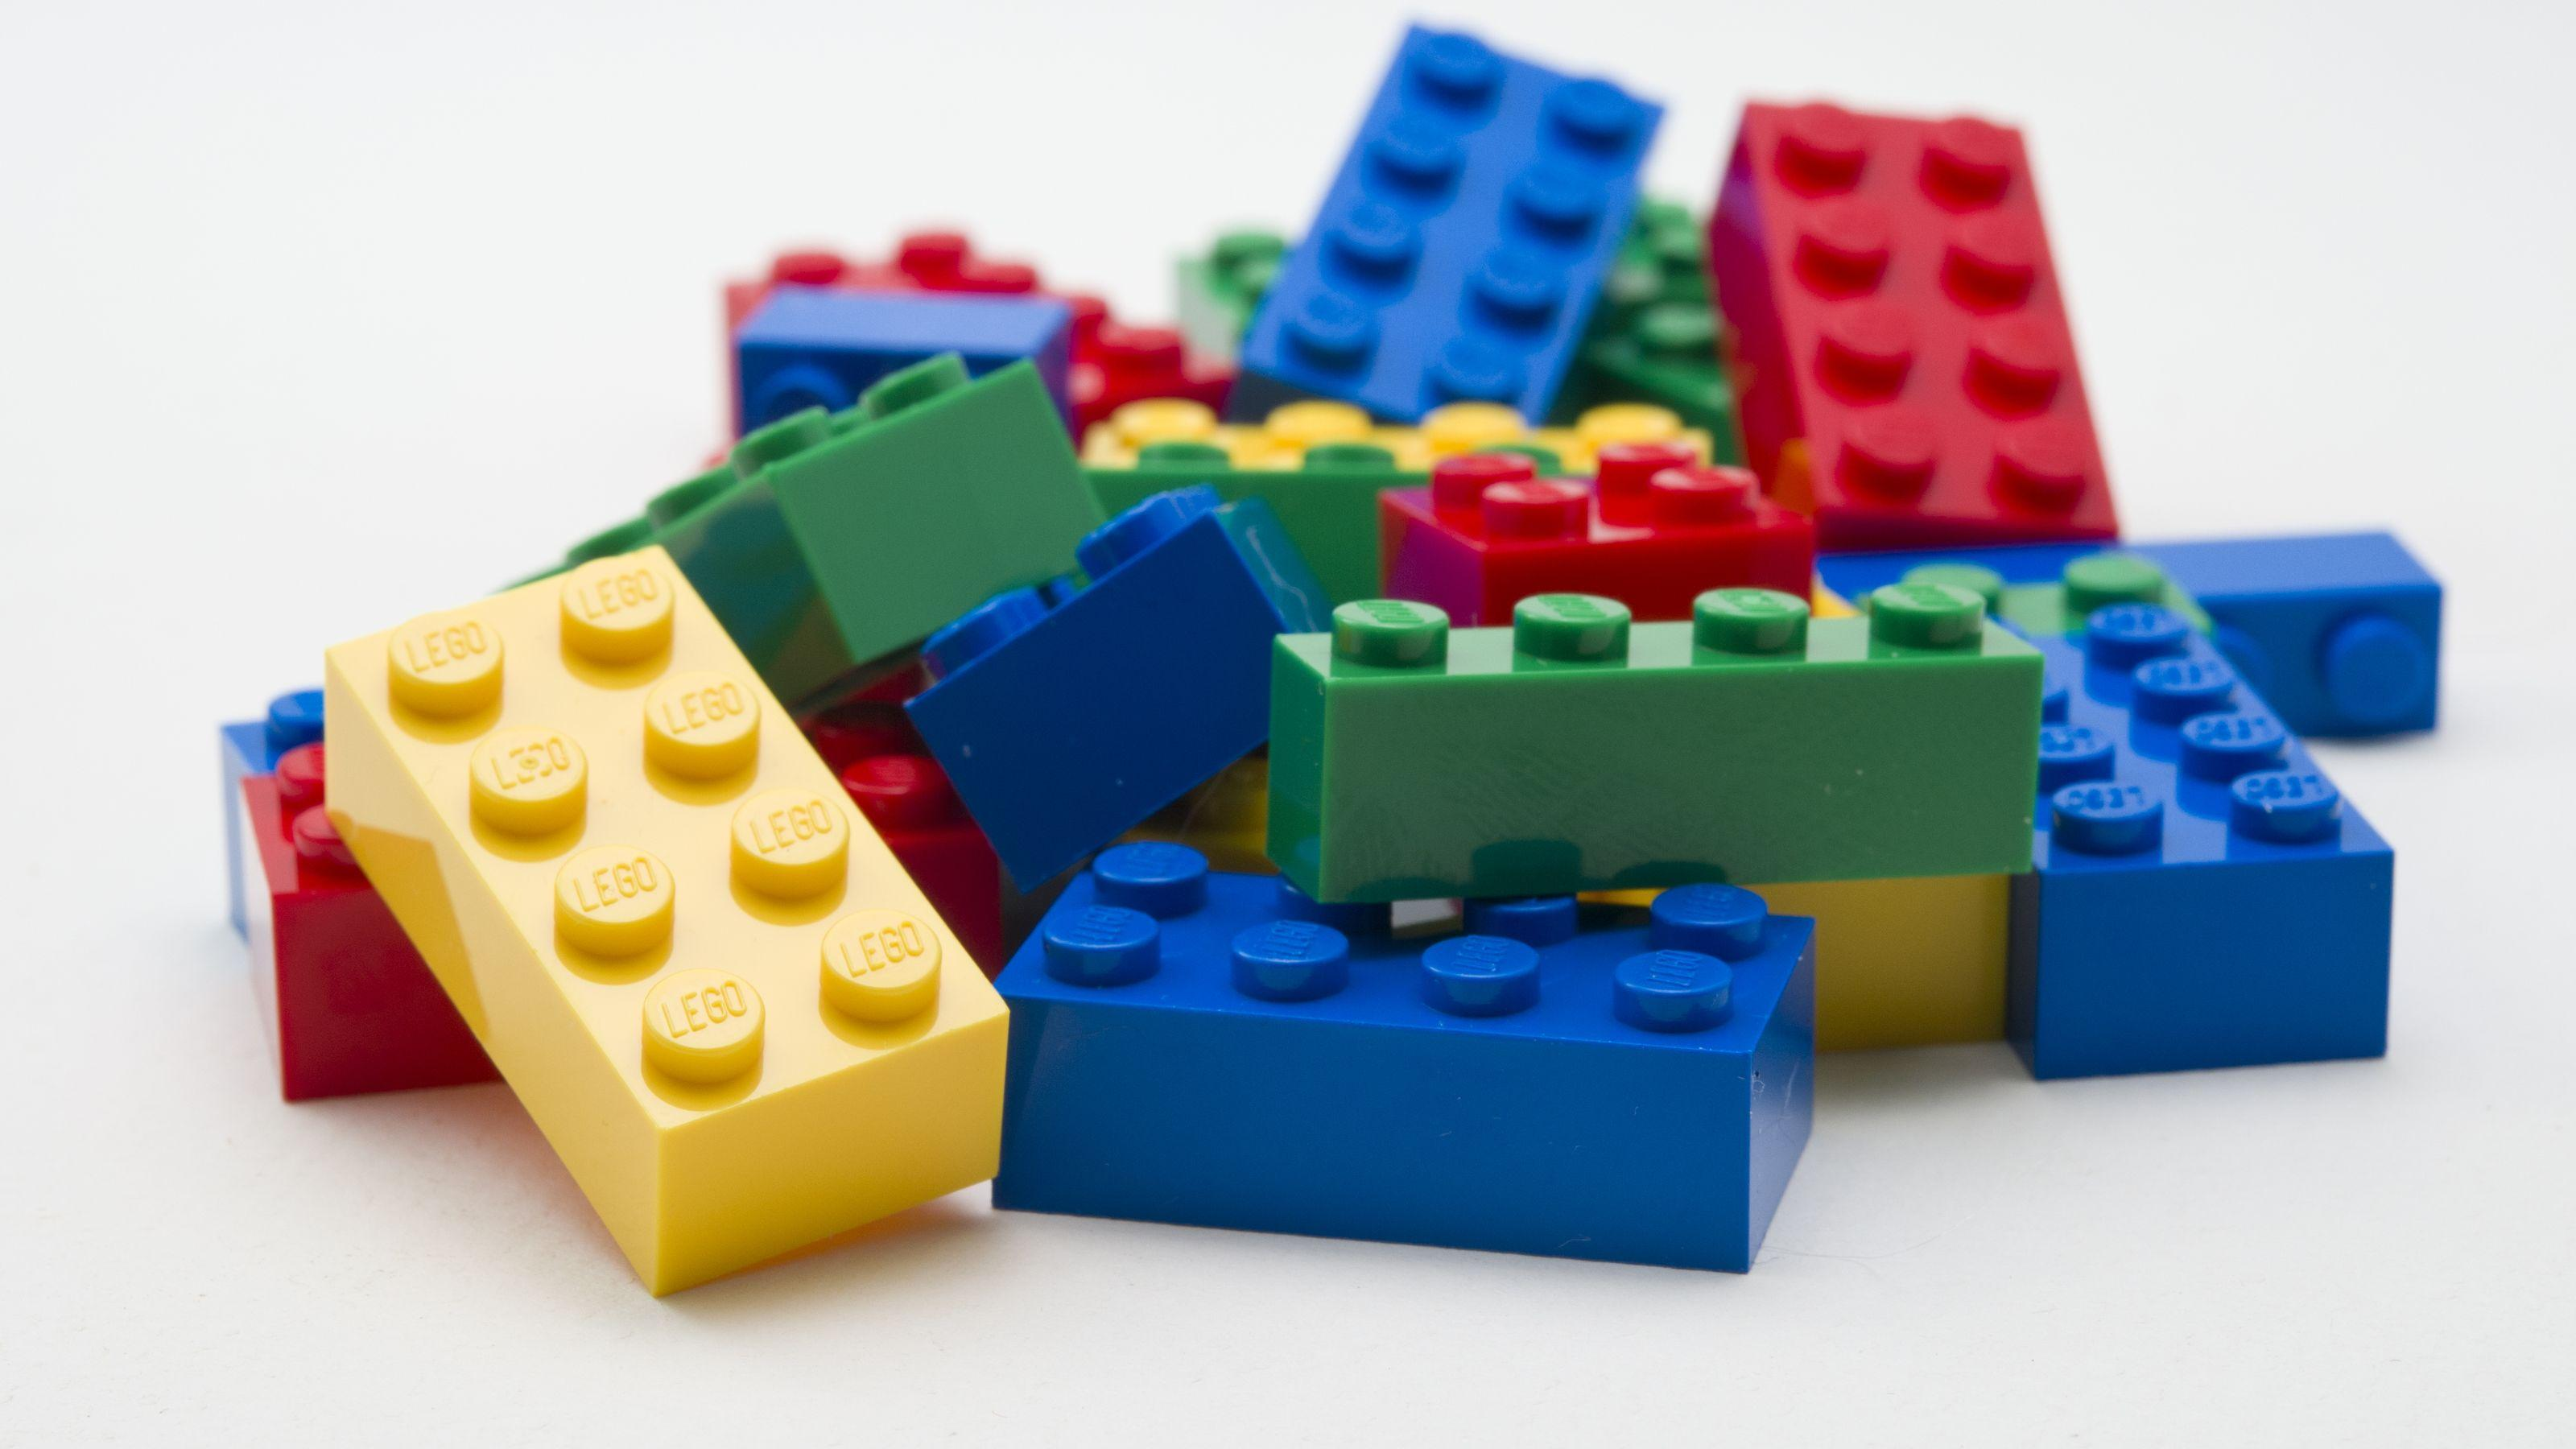 sustainability of the lego company in the age of virtual platforms United nations secretary-general ban ki-moon and president of the world bank group dr jim yong kim announced on 21 april 2016 the appointment of 10 heads of state and government as the members of the high-level panel on water, and two special advisors to the panel.